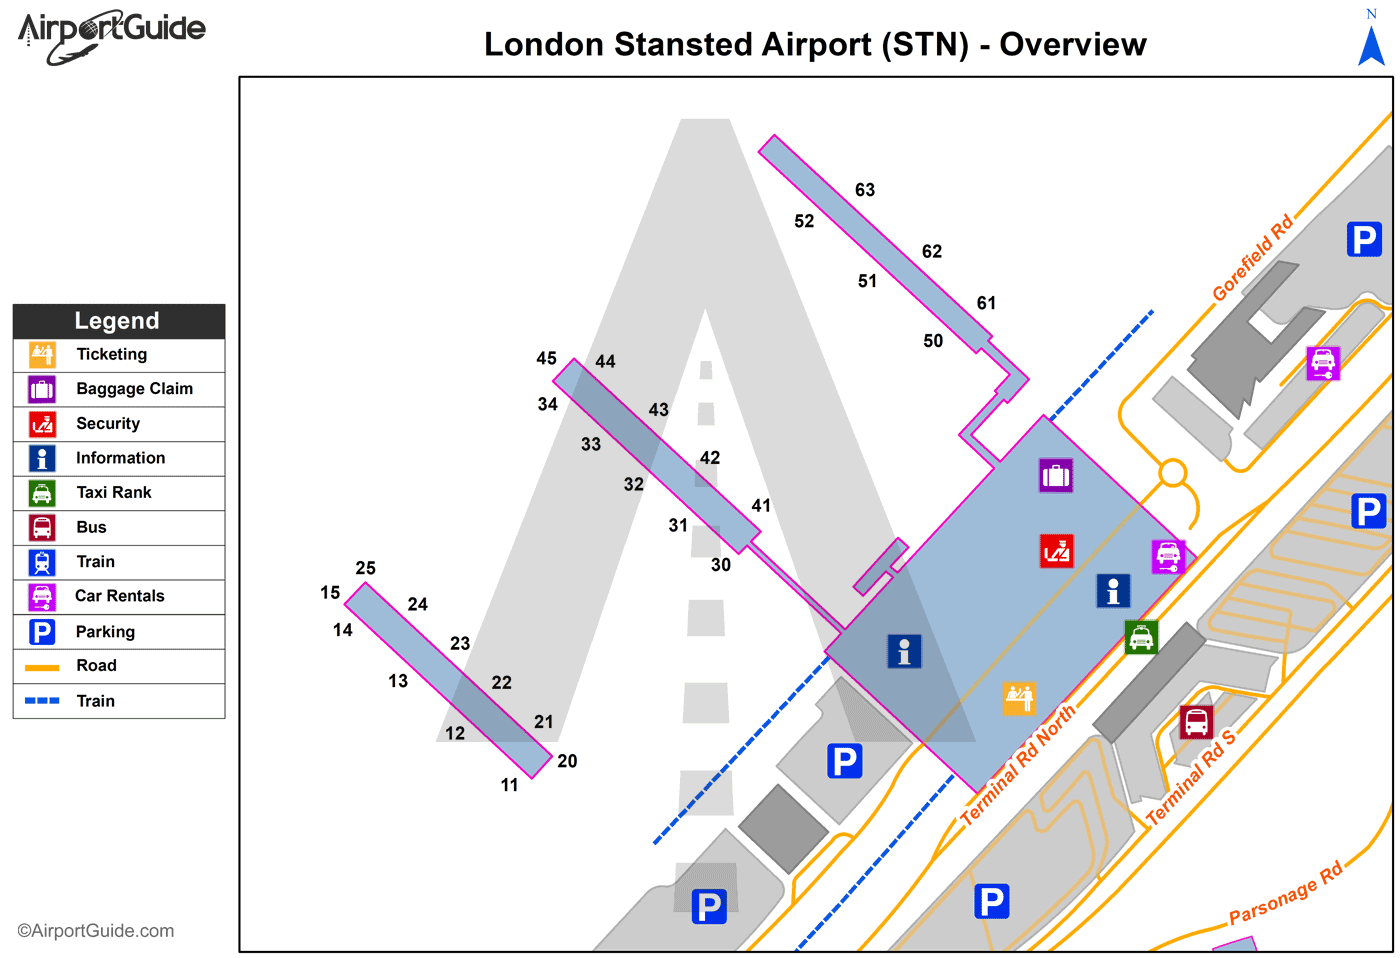 London - London Stansted (STN) Airport Terminal Map - Overview